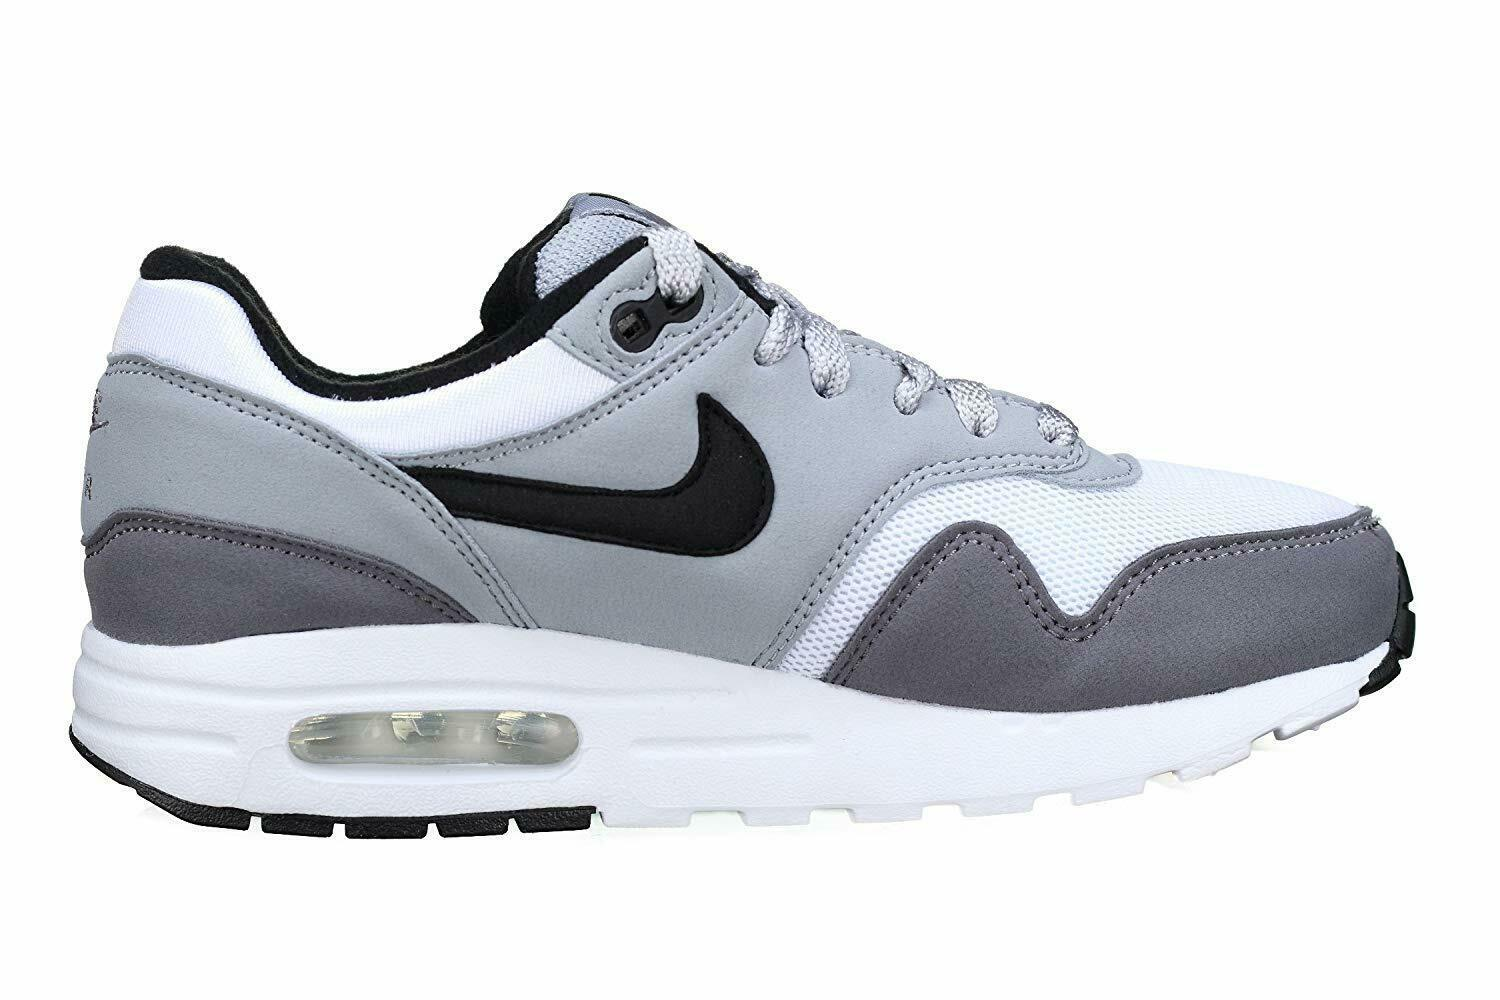 Nike Air Max 1 (GS) White Black Wolf Grey Gunsmoke Kids Running Shoes 807602 108